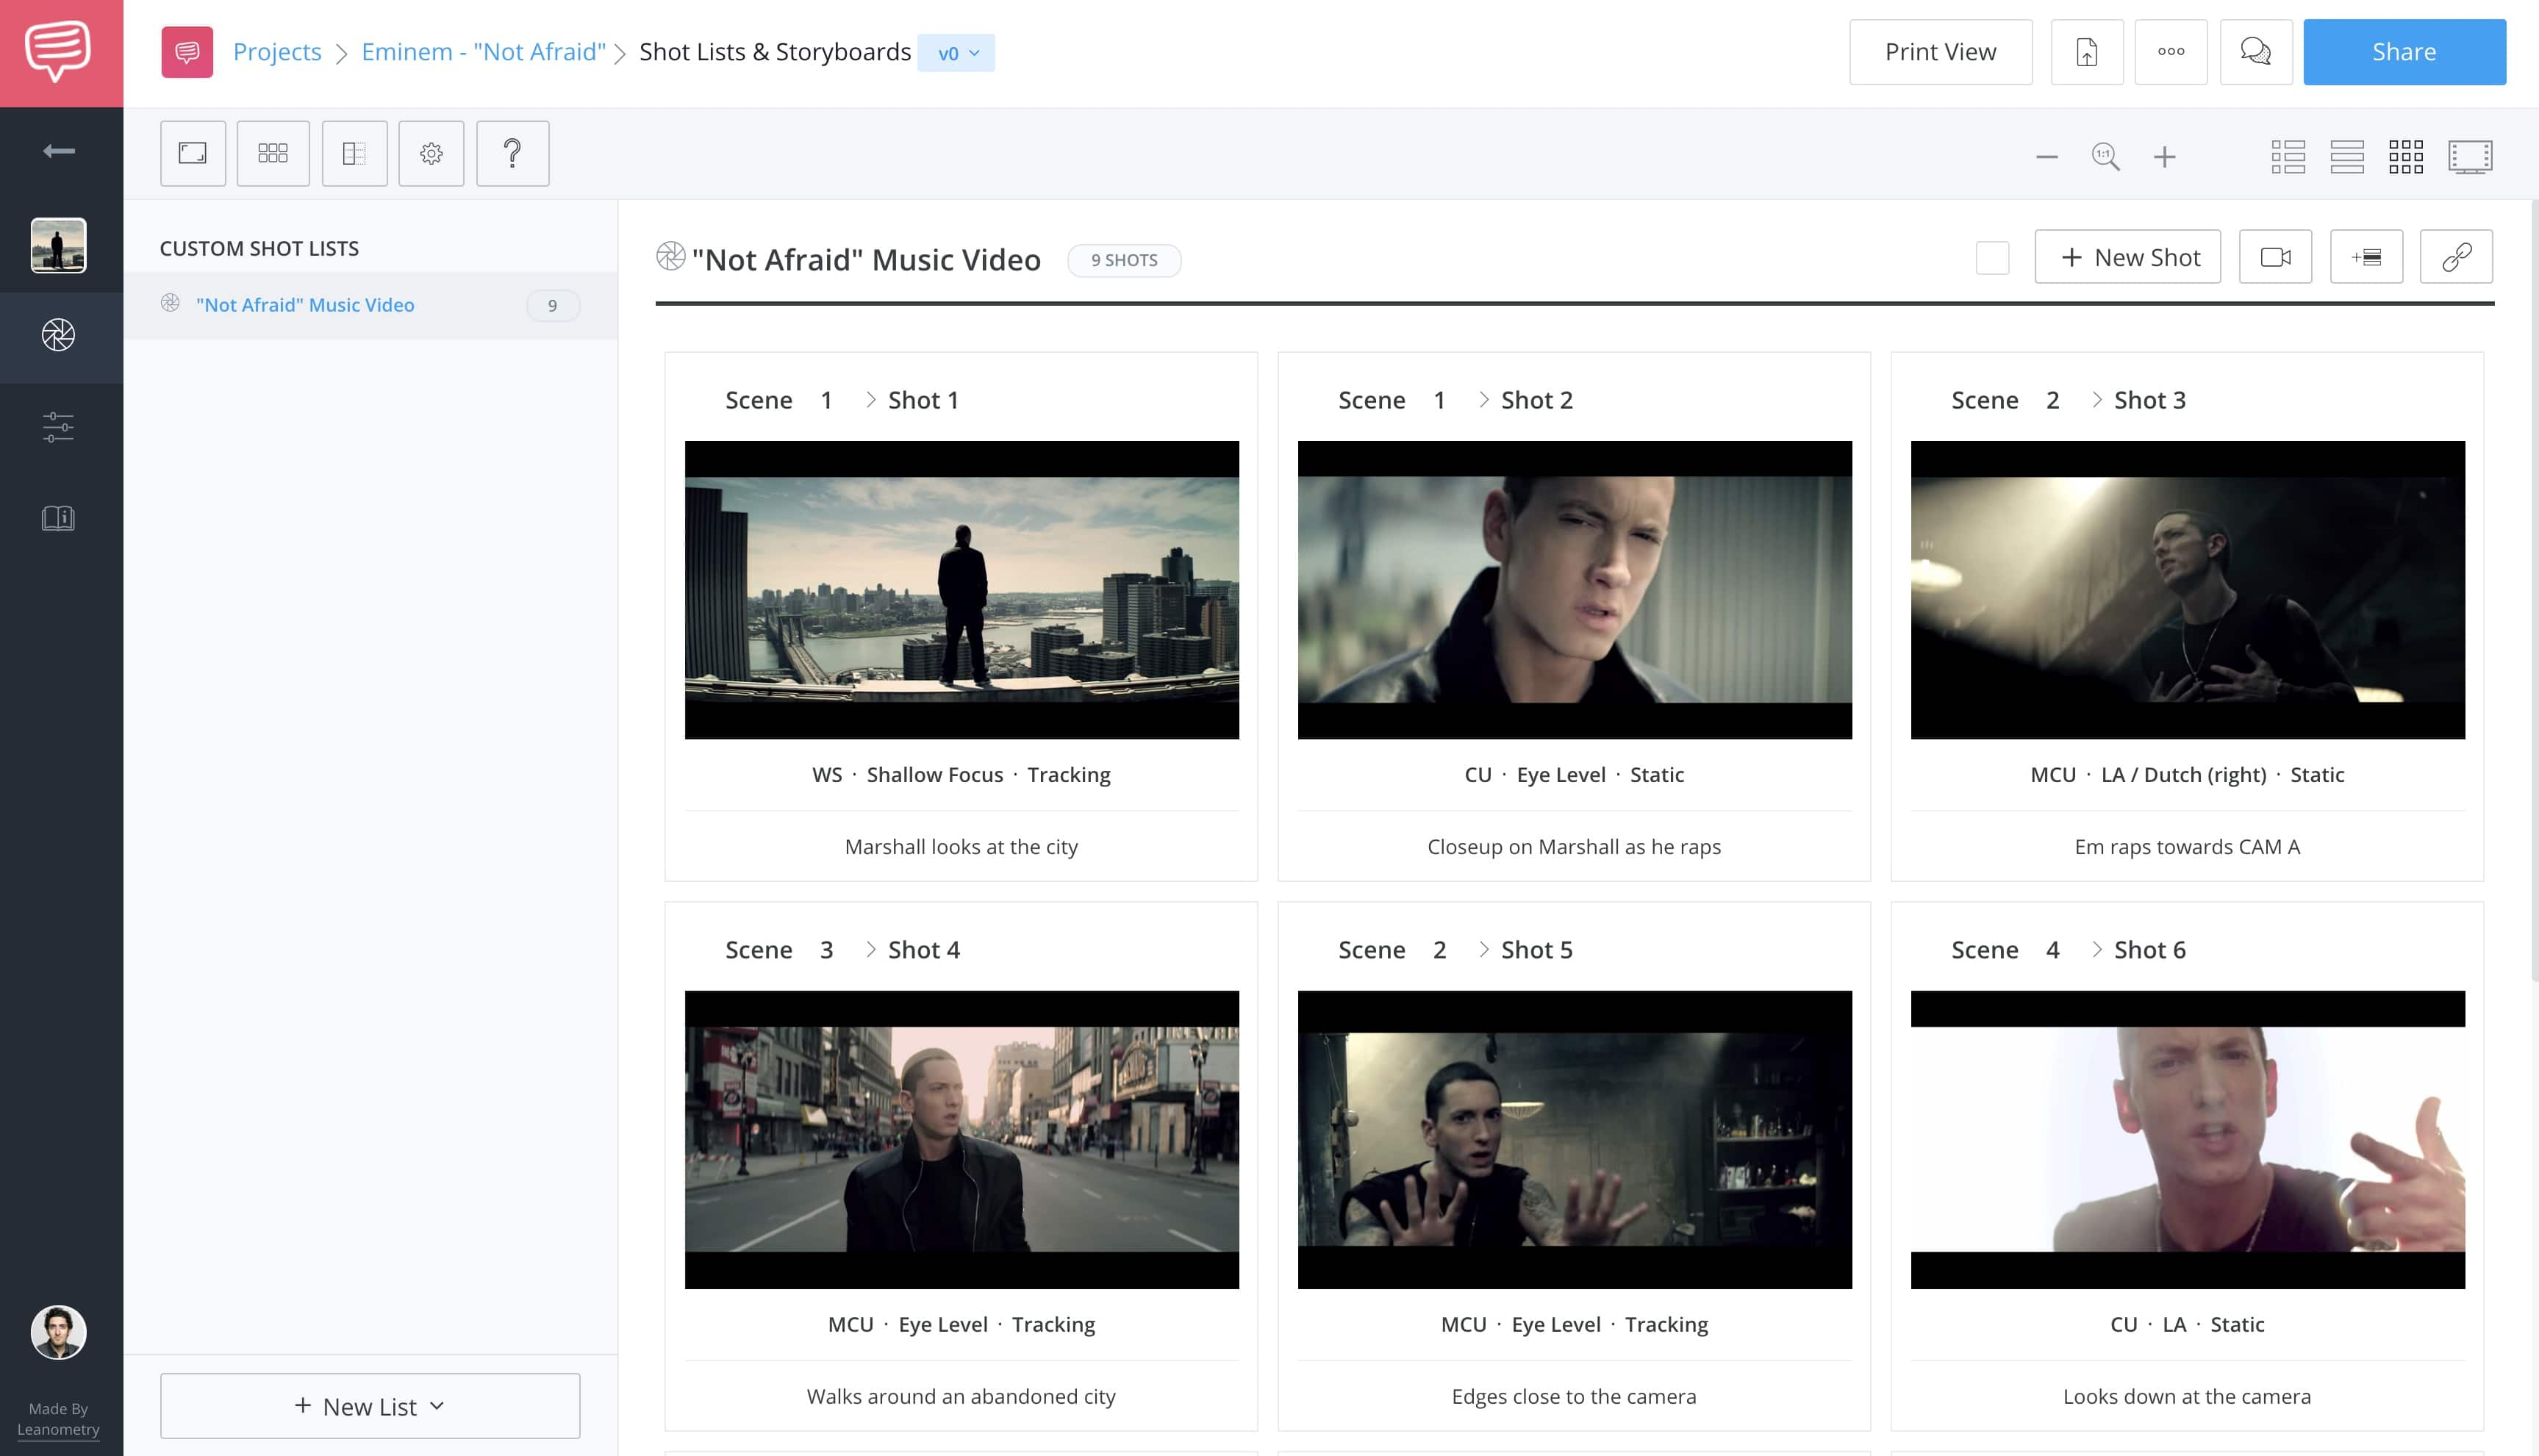 Music Video Storyboard Template - Eminem Not Afraid - StudioBinder